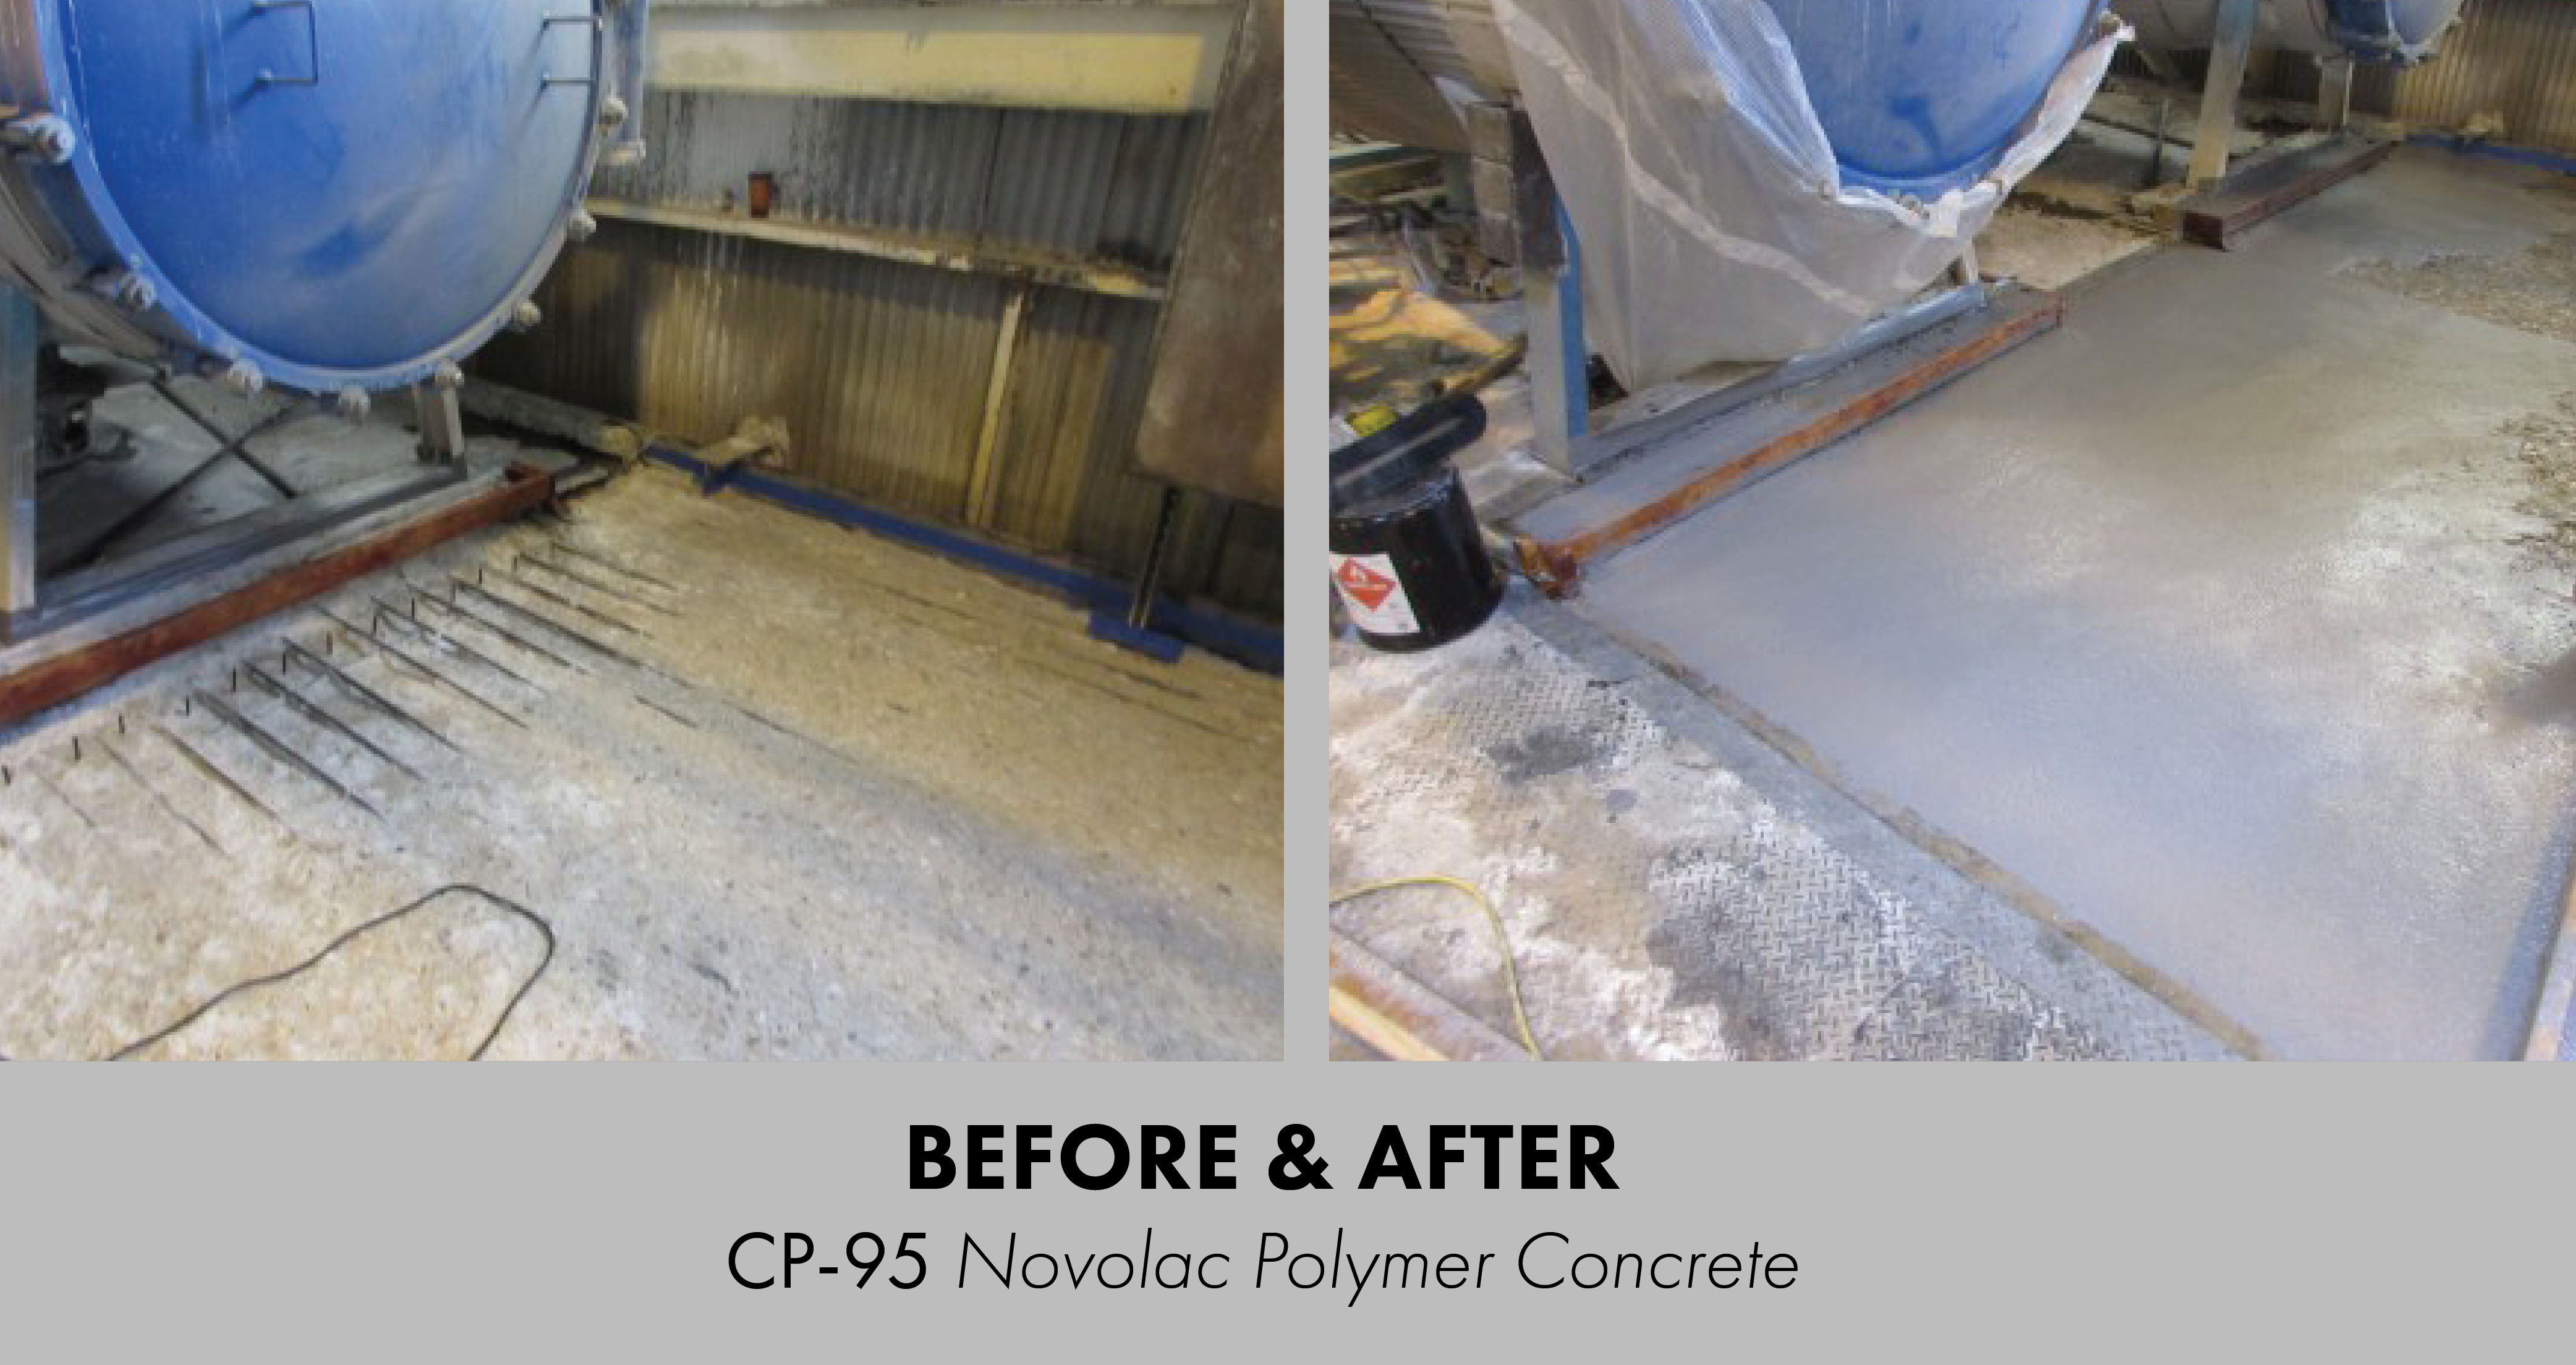 A before and after of a damaged floor being repaired with polymer concrete